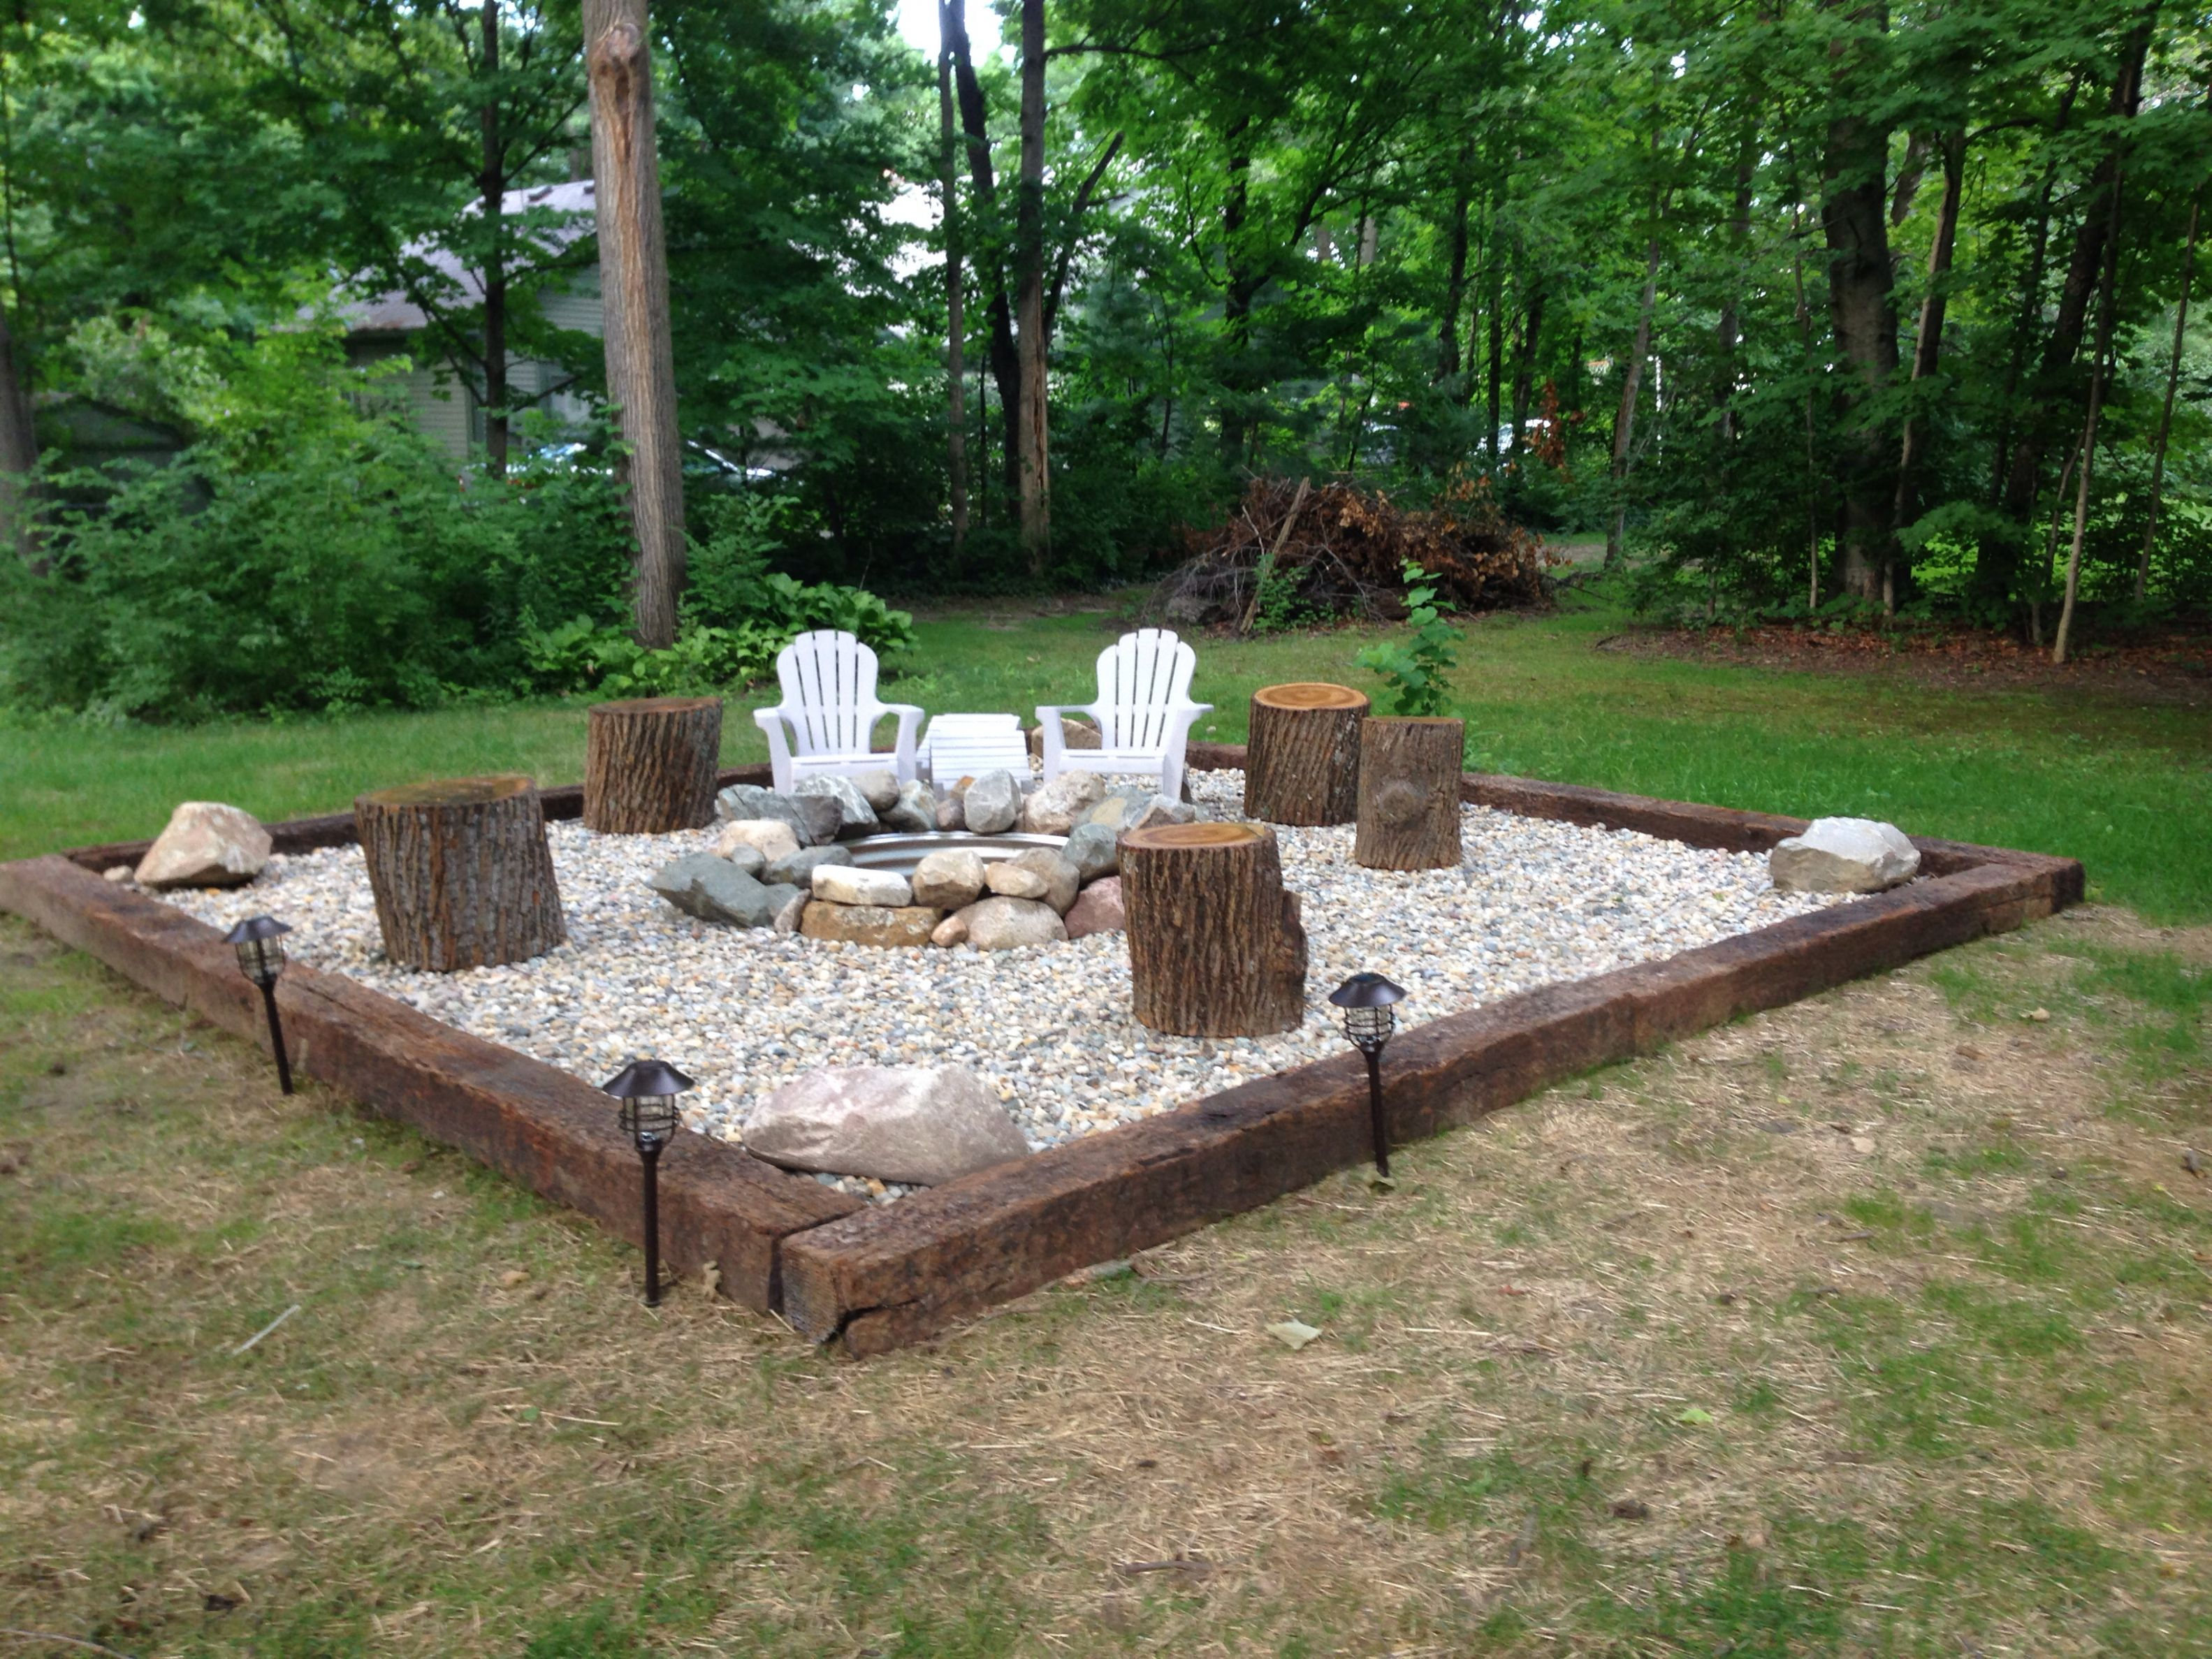 30 Best Backyard Fire Pit Area Inspirations For Your Cozy And Rustic